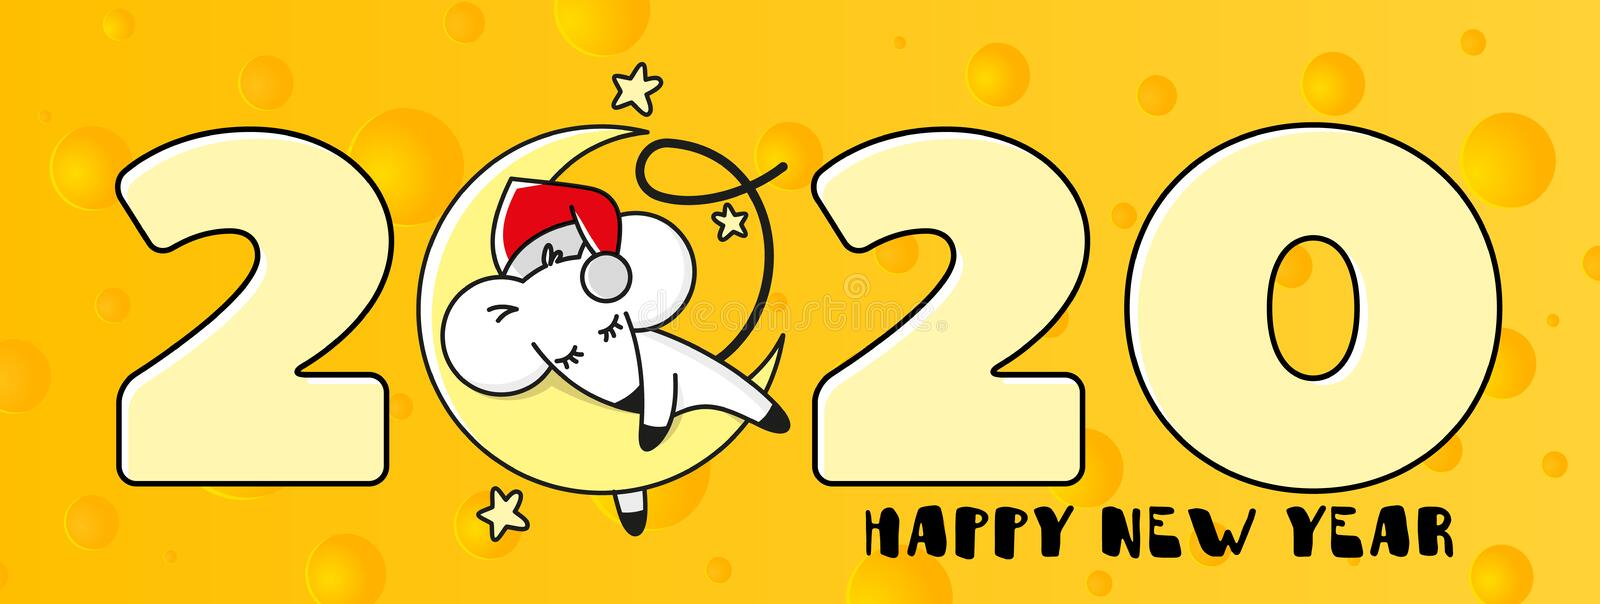 Web Banner for Happy New Year, symbol of 2020 on a background of cheese. The mouse is sleeping on the moon. Template for greeting vector illustration